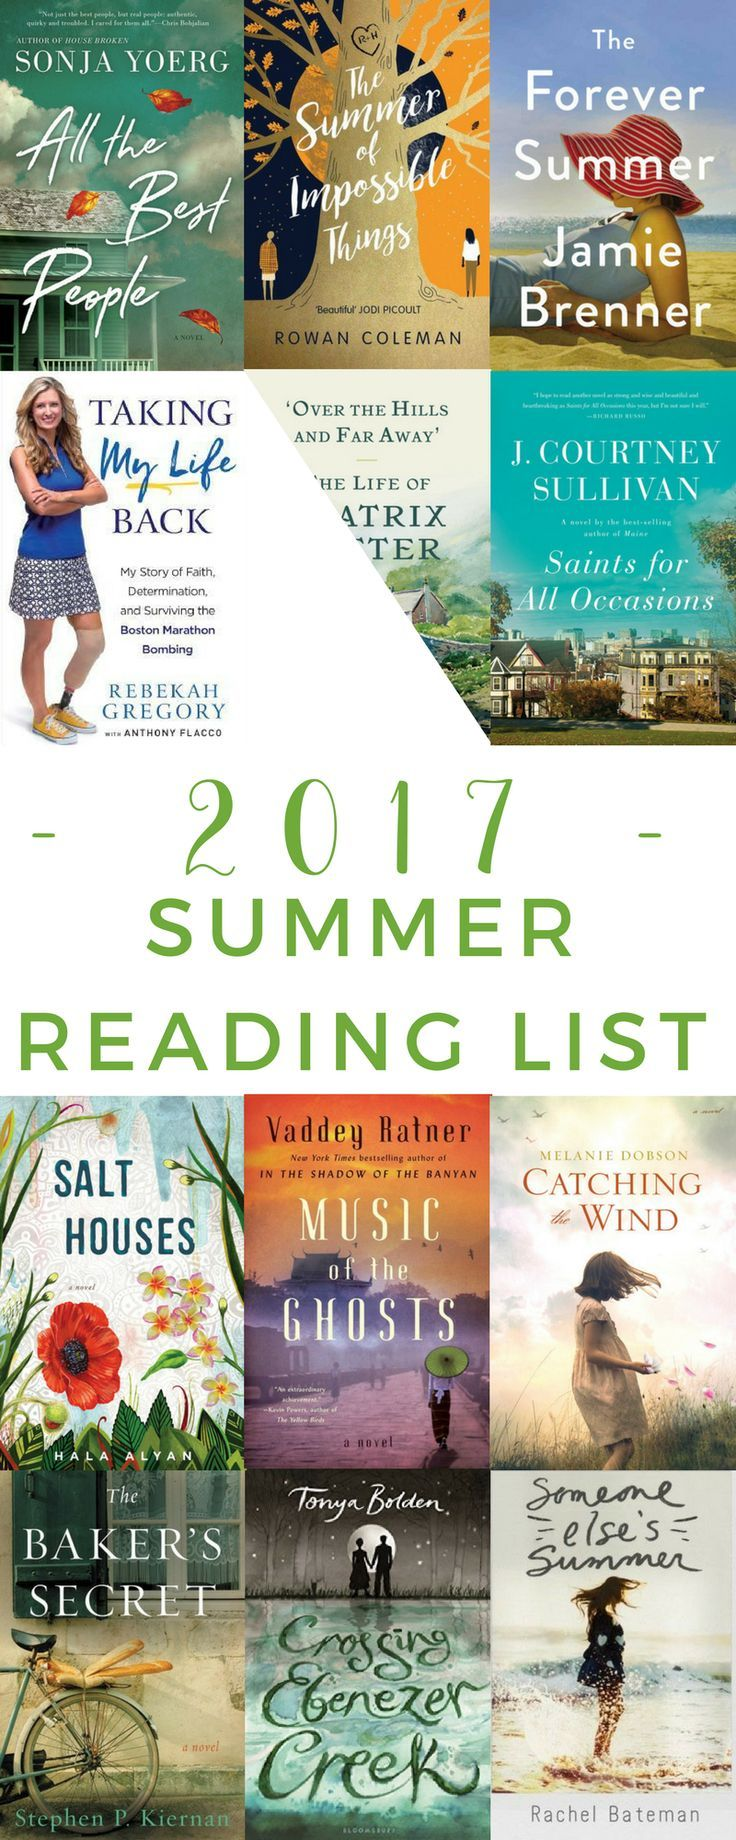 My top book selections for my 2017 summer reading list. Includes chick lit, adult fiction, historical fiction, biographies, and more so there is something to please every reader.